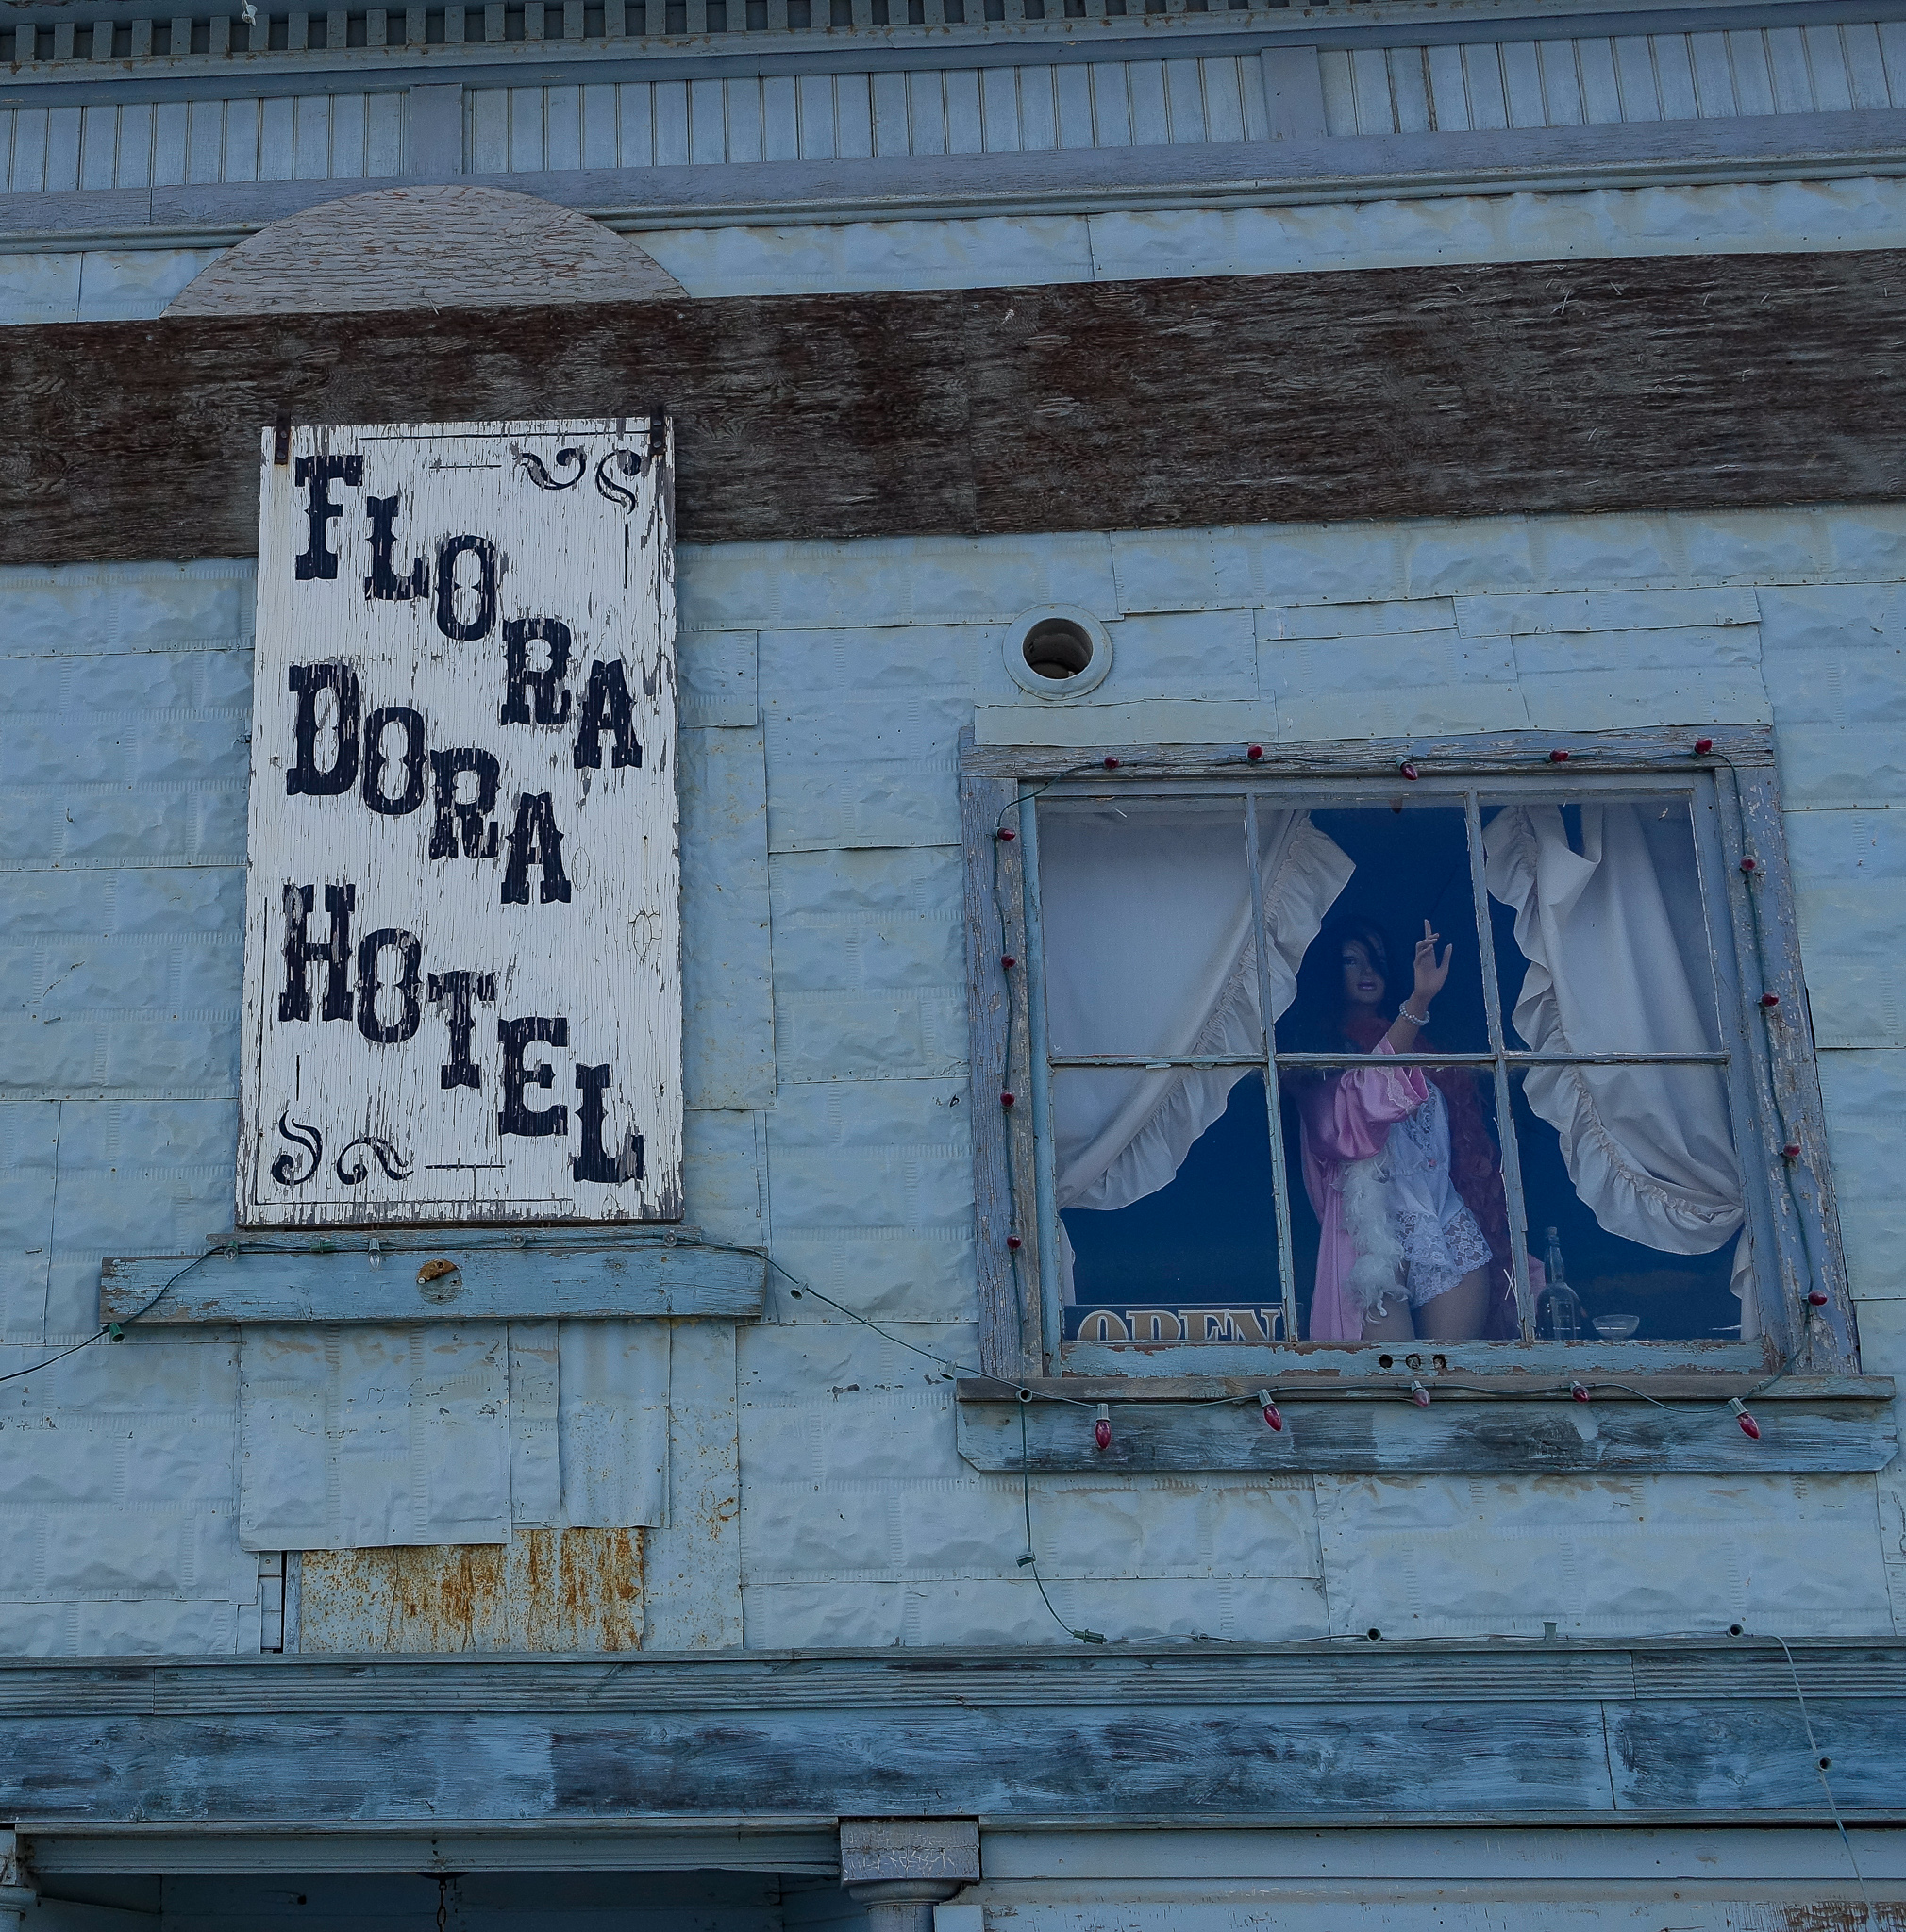 """IN THE MID-30S, THE FLORA DORA HOTEL WAS THE PROPERTY OF MADAME RUBY SCOTT. THE PRICES FOR """"LIBERTY"""" OR """"CECILE"""" WERE $5 A TIME OR $20 FOR THE NIGHT. A DREDGERMAN EARNED $5 FOR A 12 HOUR SHIFT."""